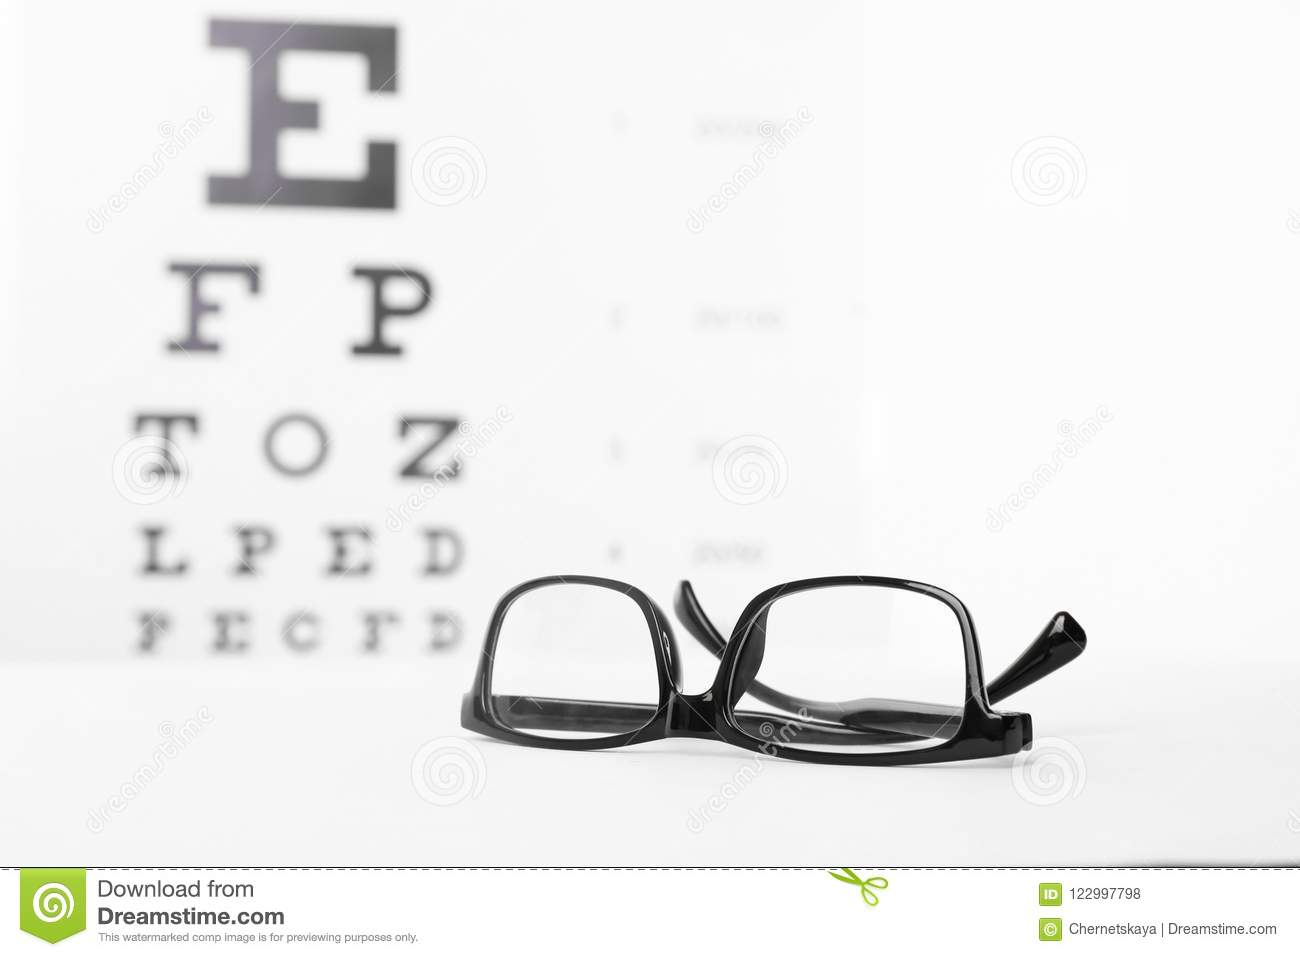 1a7b8d70017d Glasses With Corrective Lenses Stock Photo - Image of design